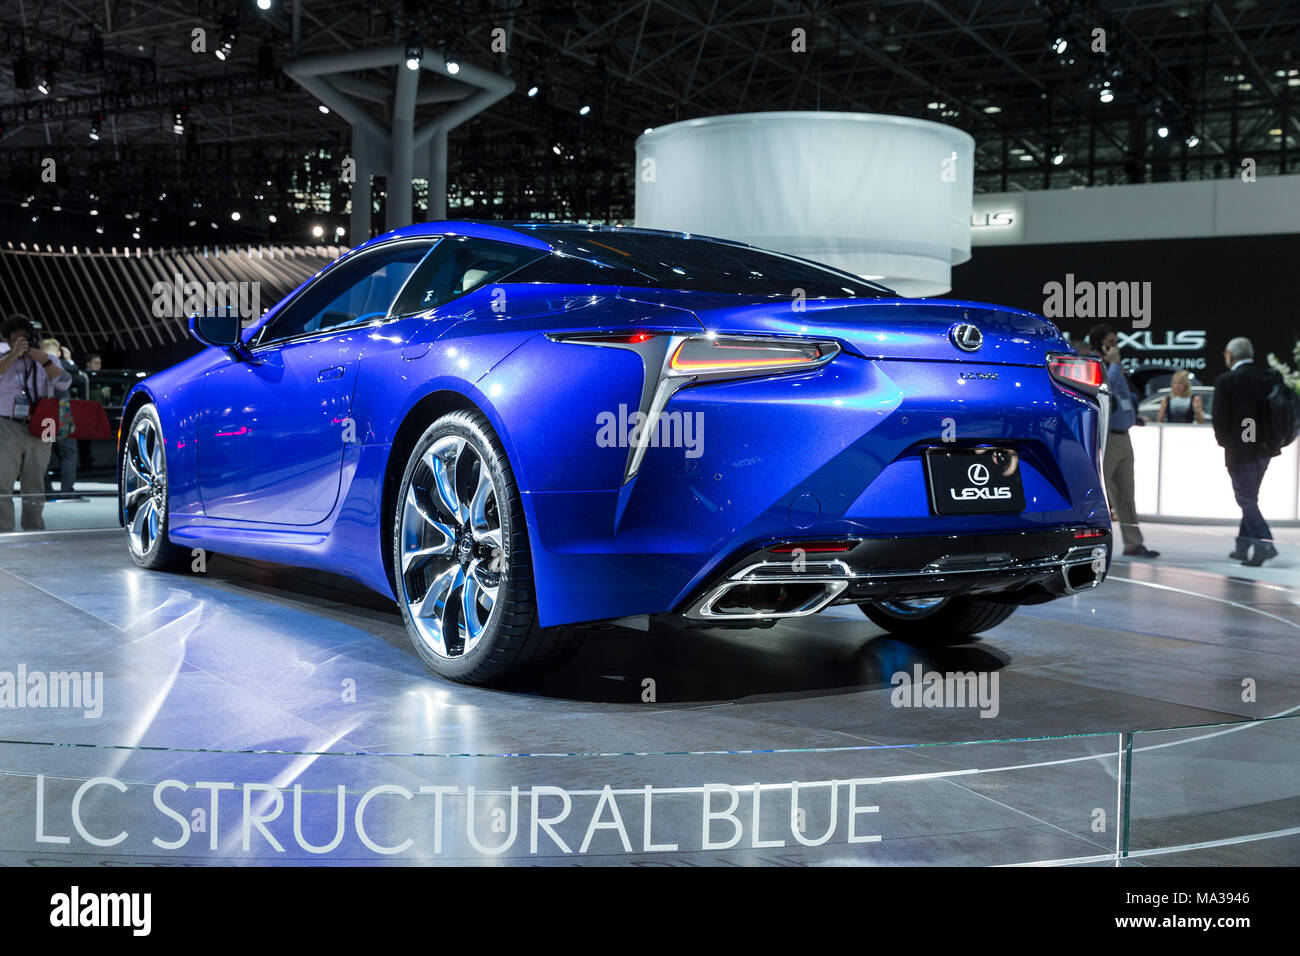 Lexus LC LC Structural Blue Coupe On Display At New York - Nyc car show javits center